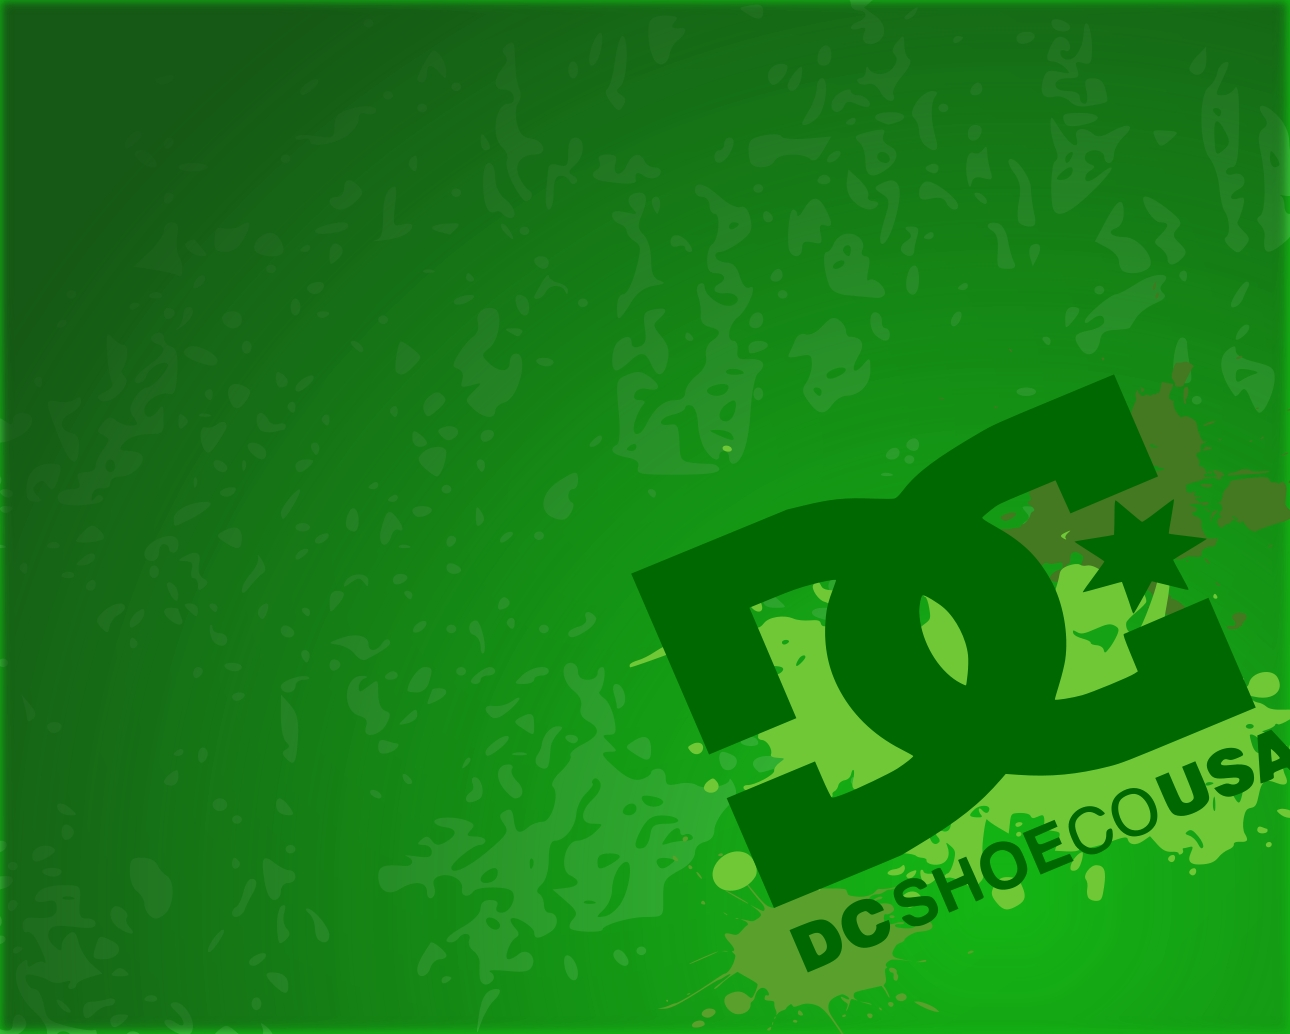 Dc shoes logo wallpaper HD   Imagui 1290x1034